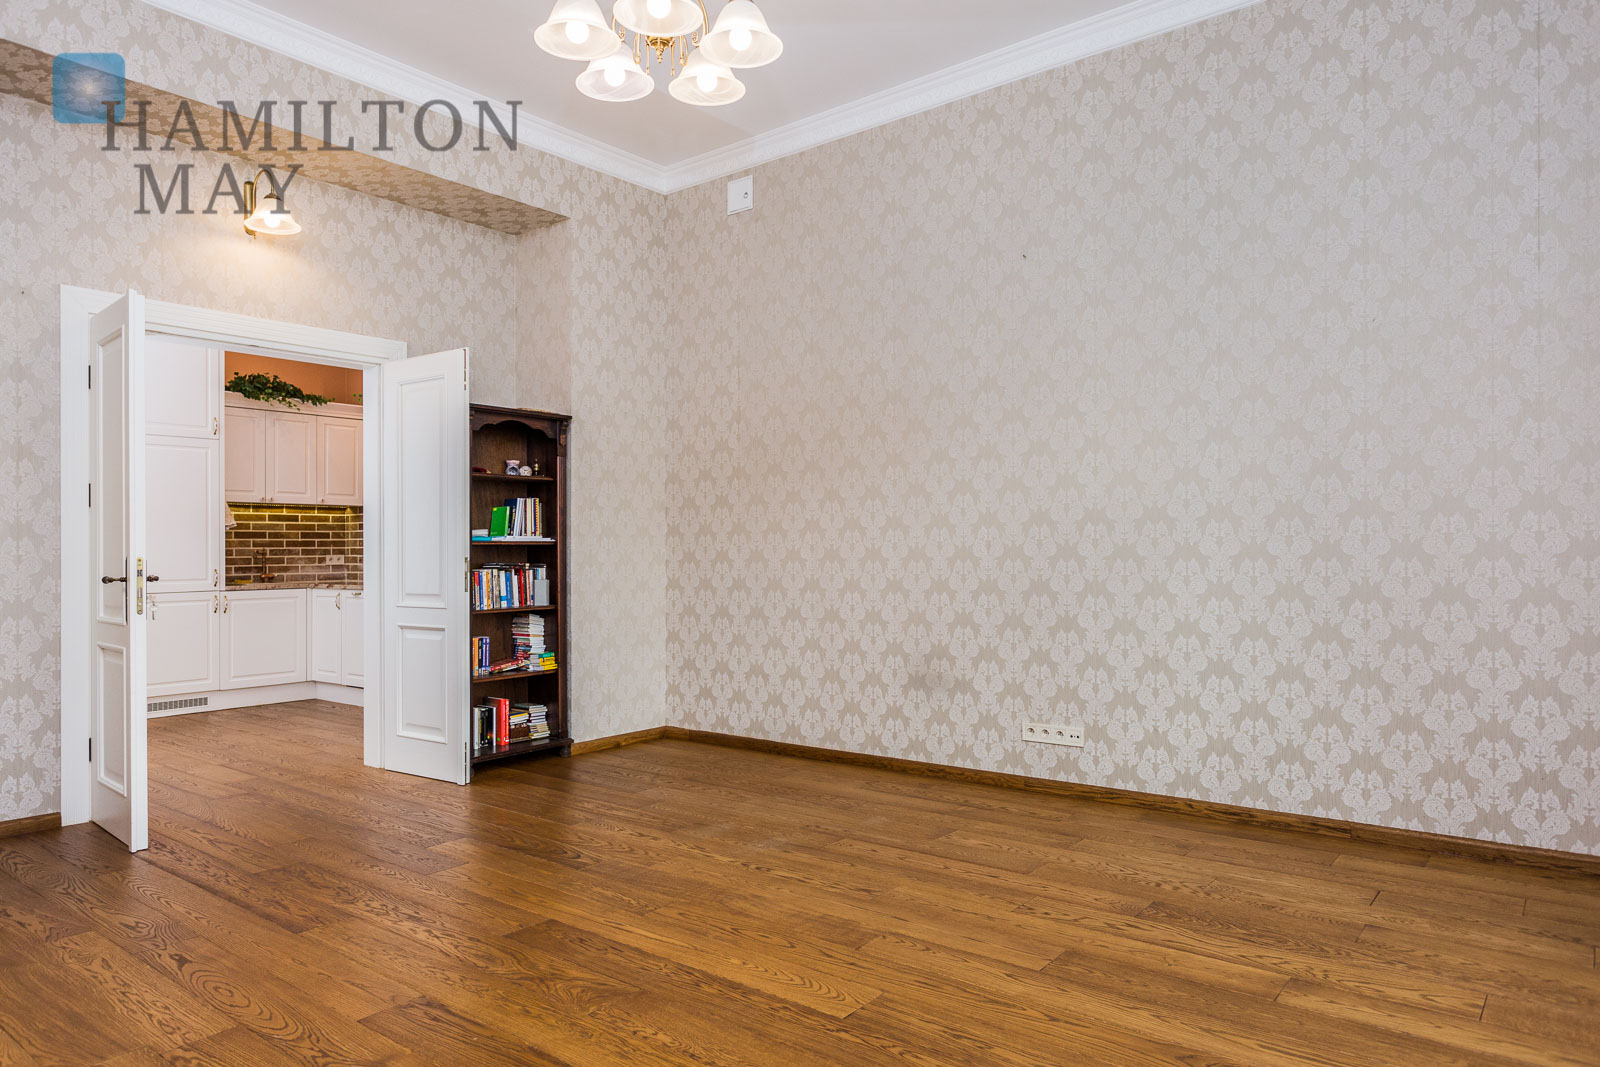 A beautifully stylish office space in a renovated tenement building by the Vistula Boulevards Krakow for sale